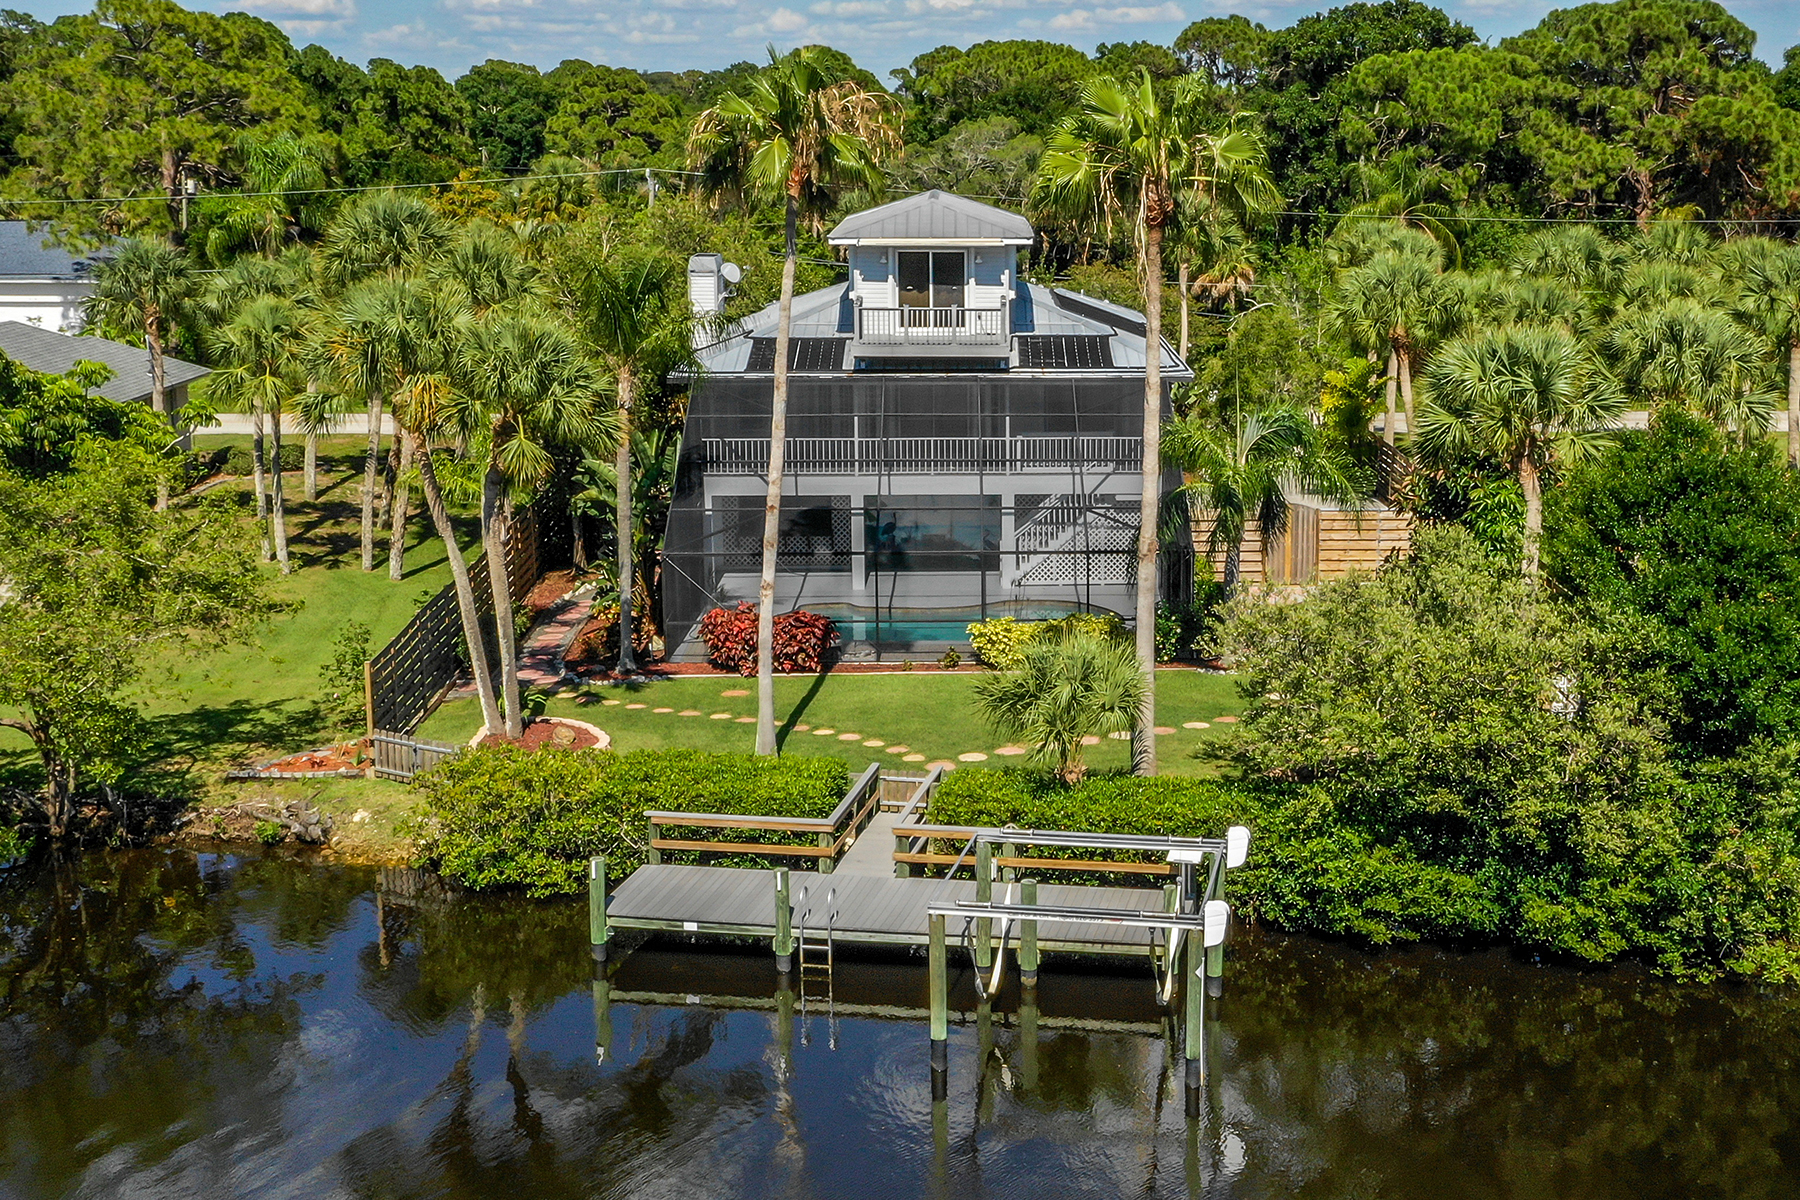 Single Family Homes for Sale at SOUTH VENICE 610 Alligator Dr, Venice, Florida 34293 United States